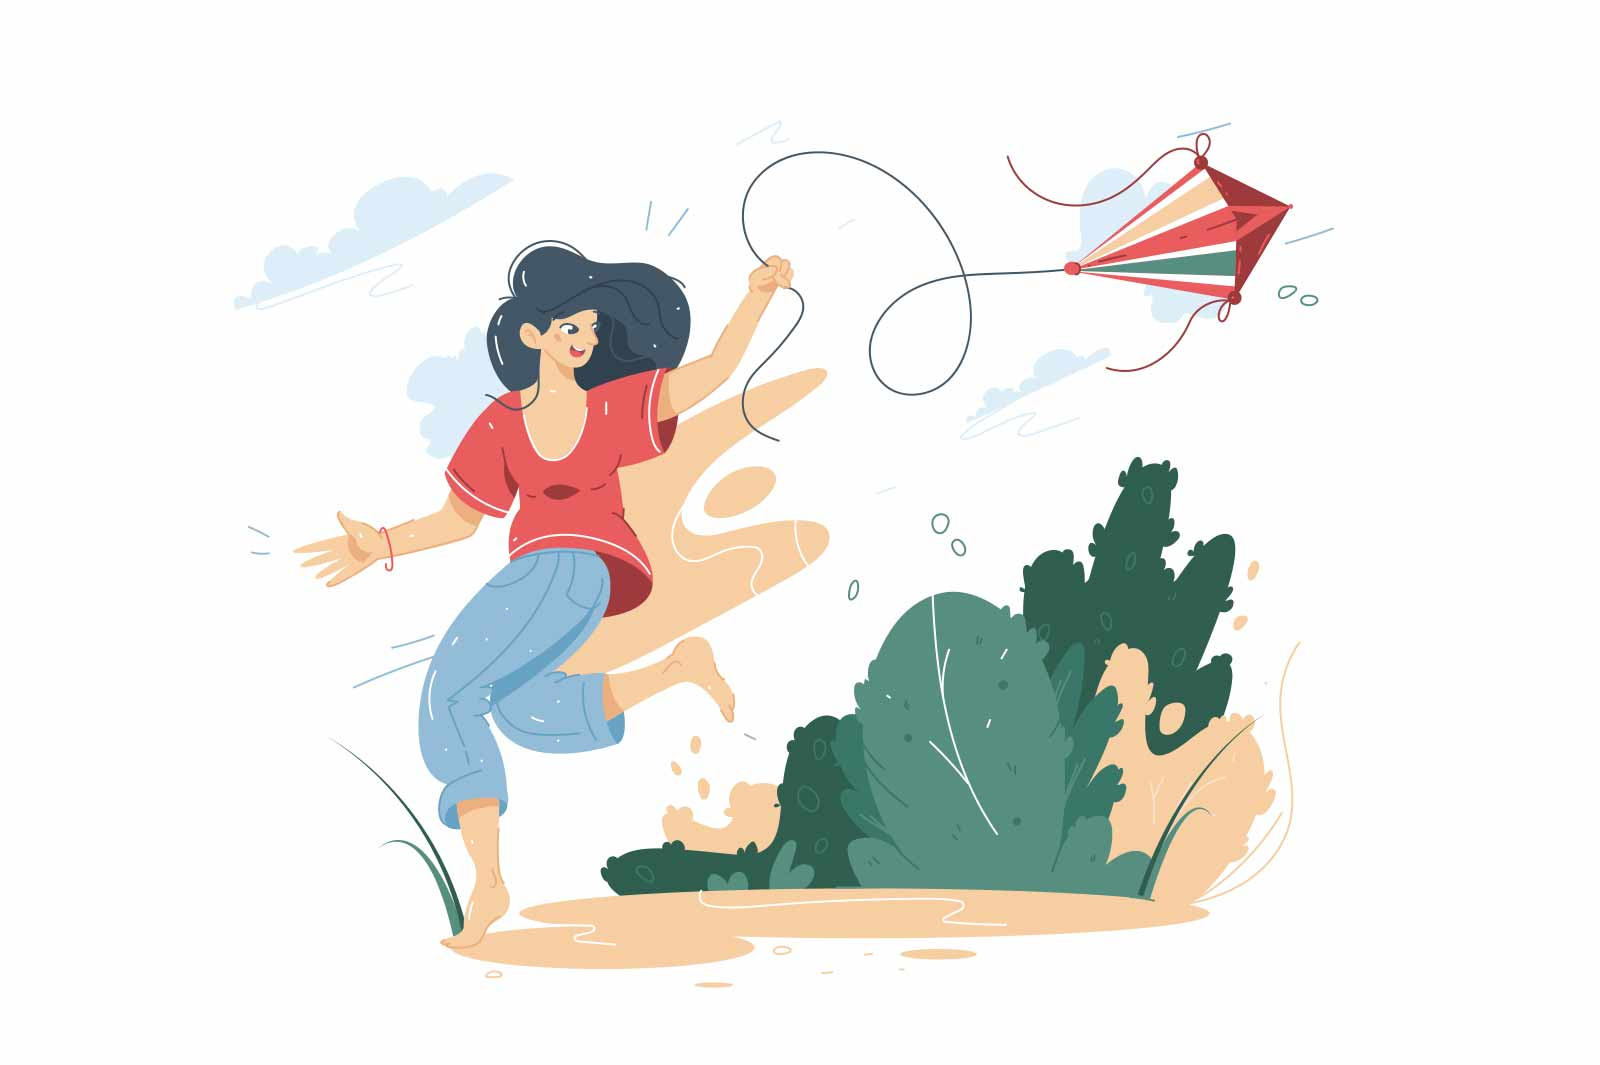 Happy smiling woman flying a kite vector illustration. Teenager having fun with kite in park flat style concept. Leisure time idea